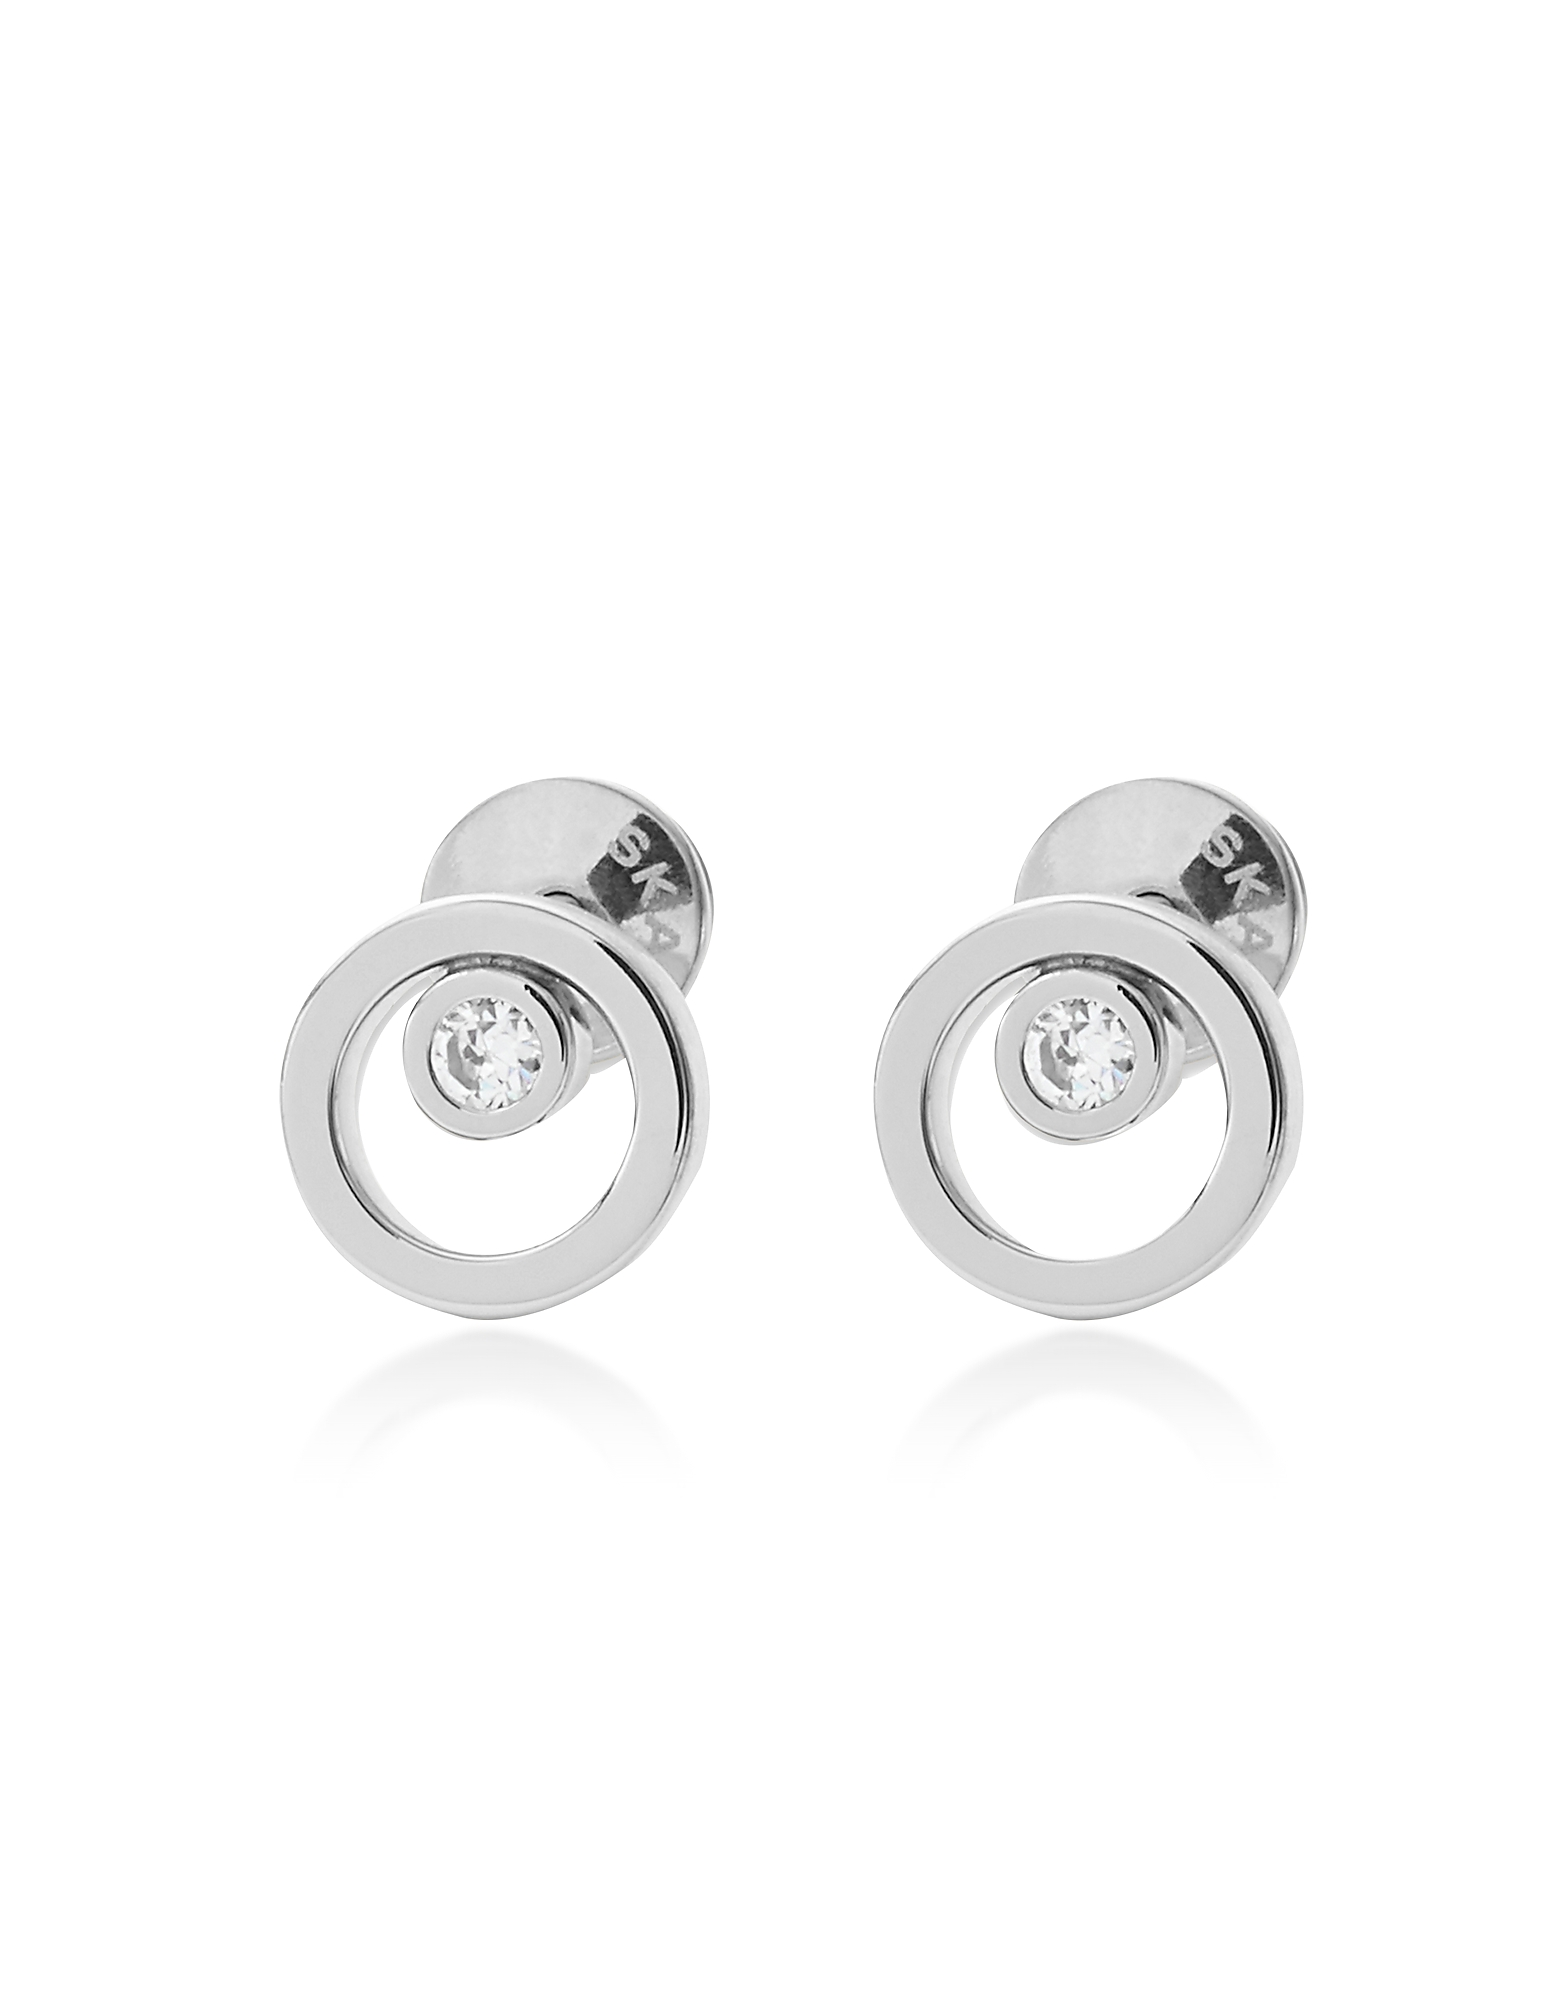 Skagen Earrings, Round Cut Out Stainless Steel Elin Women's Earrings w/Crystals